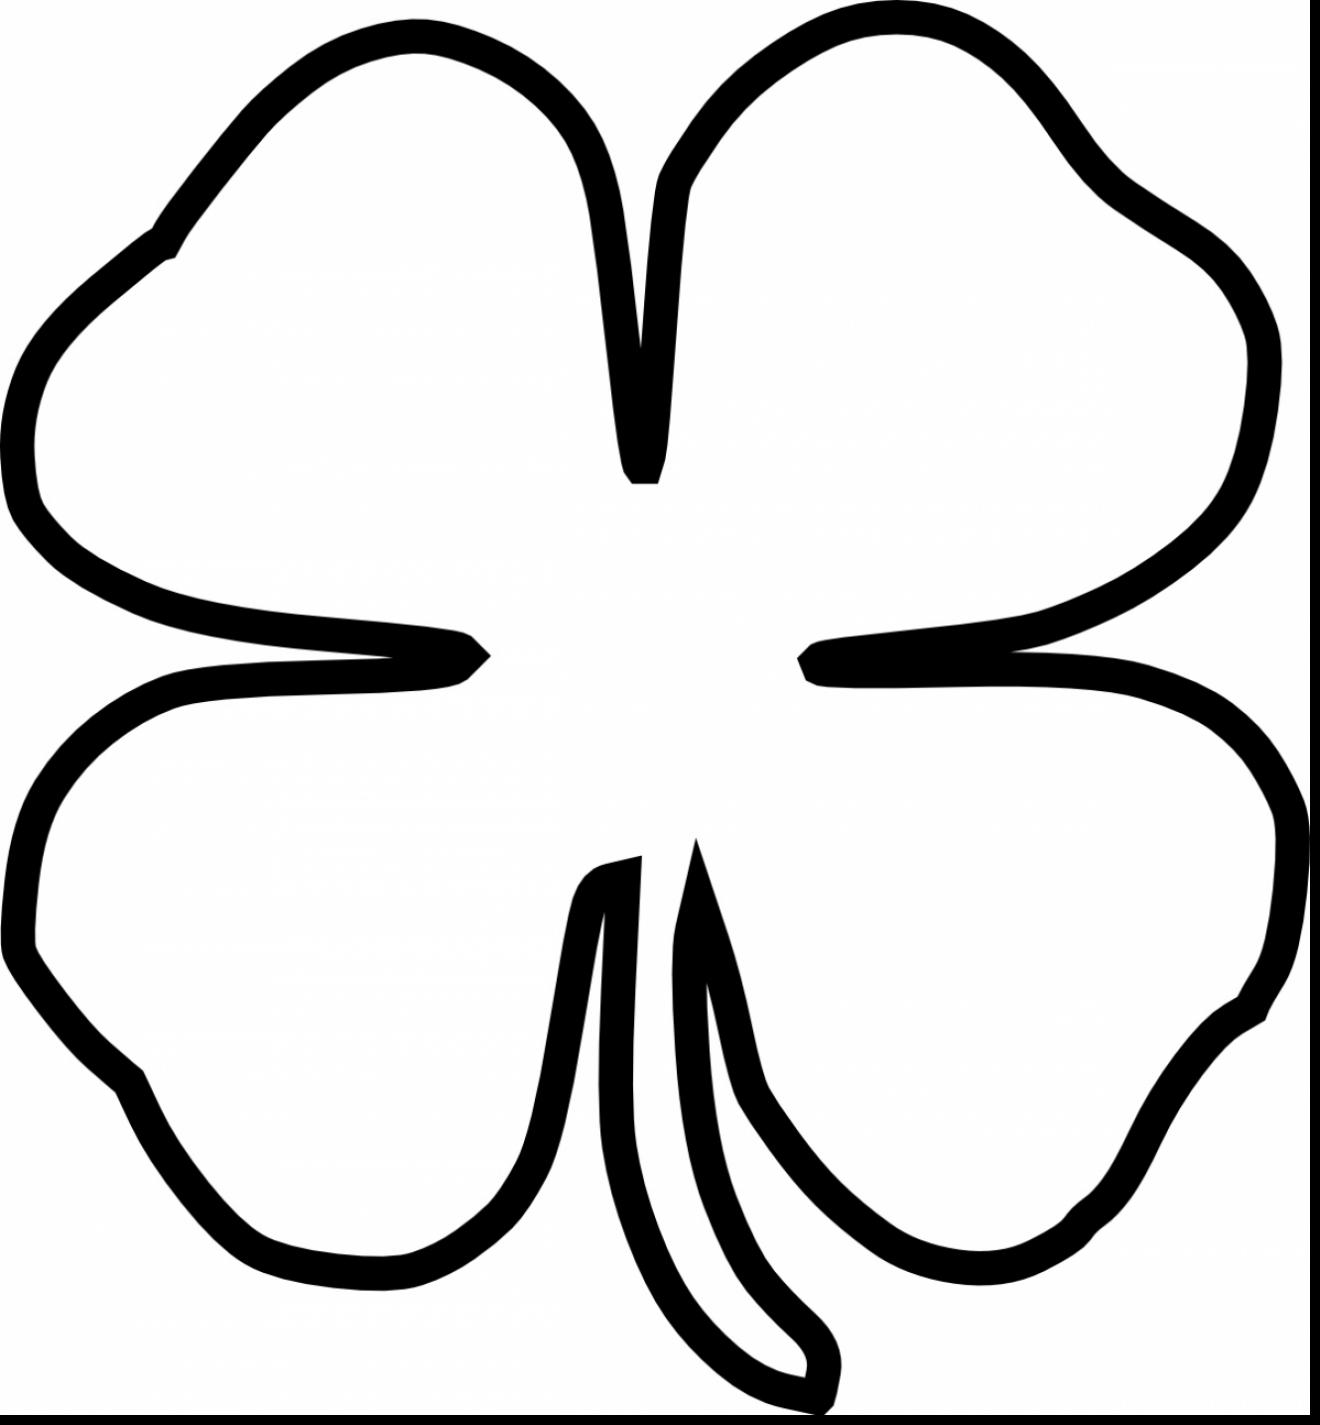 4 Leaf Clover Clipart 20 Free Cliparts